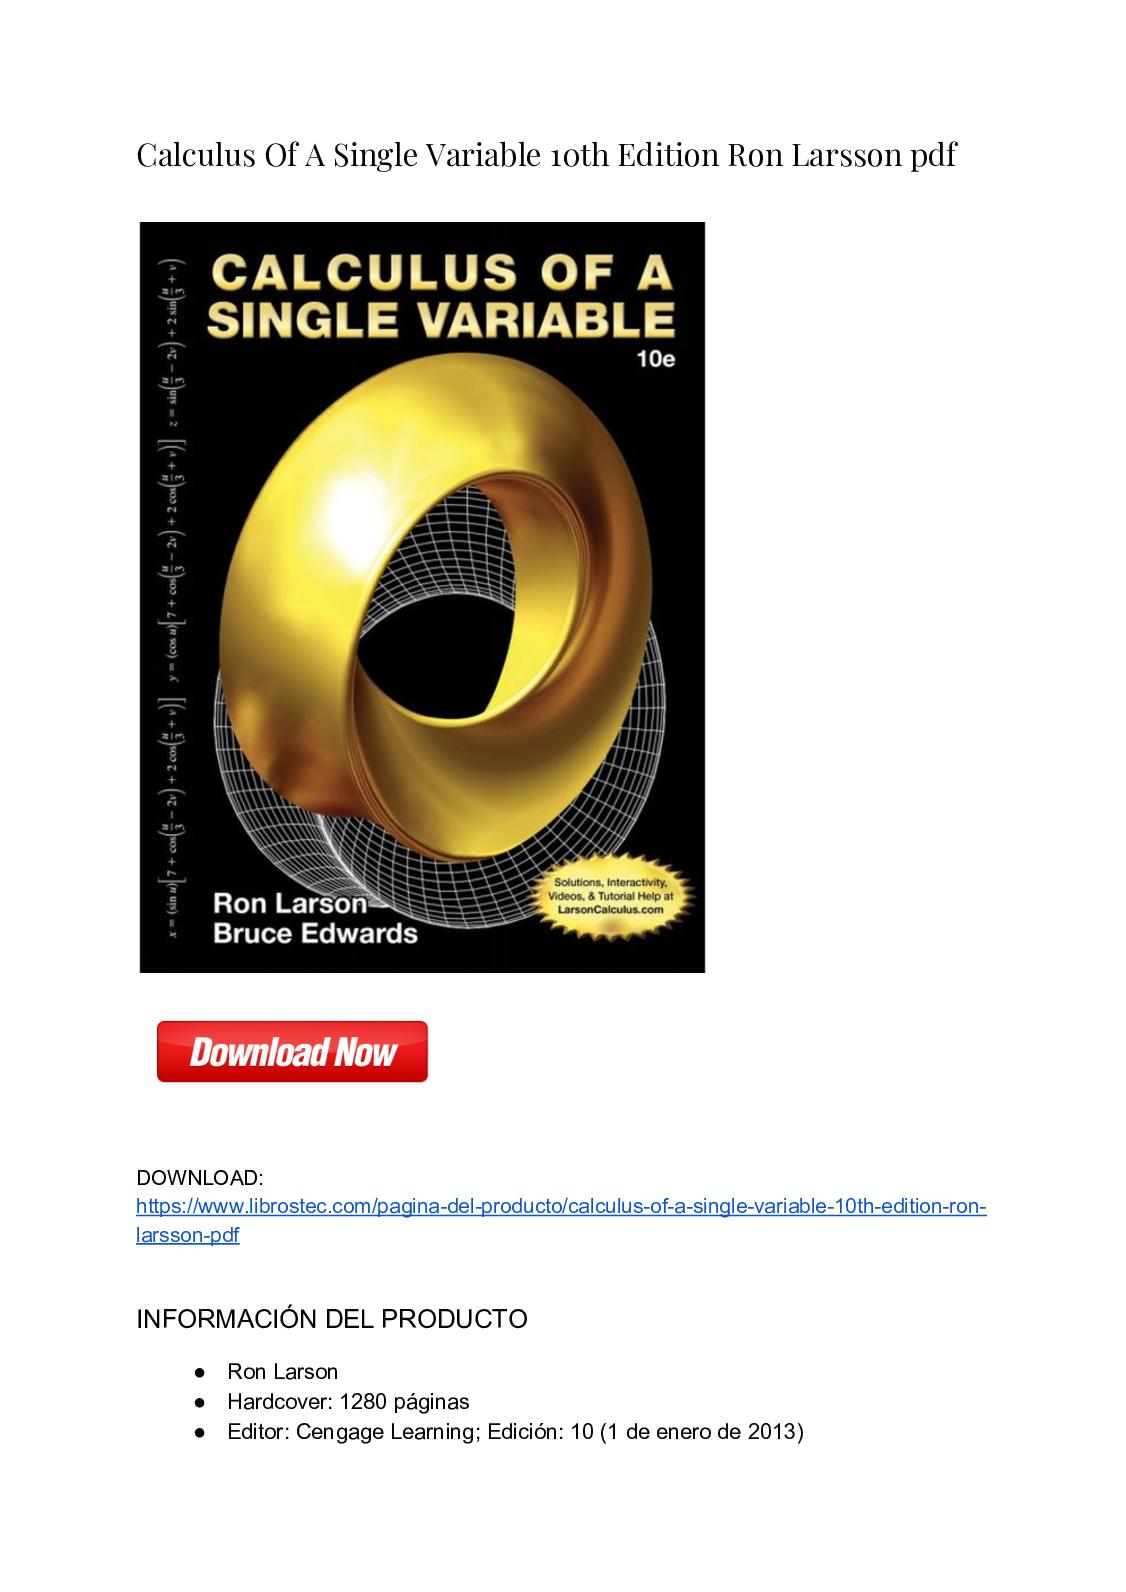 Calam O Calculus Of A Single Variable 10th Edition Ron